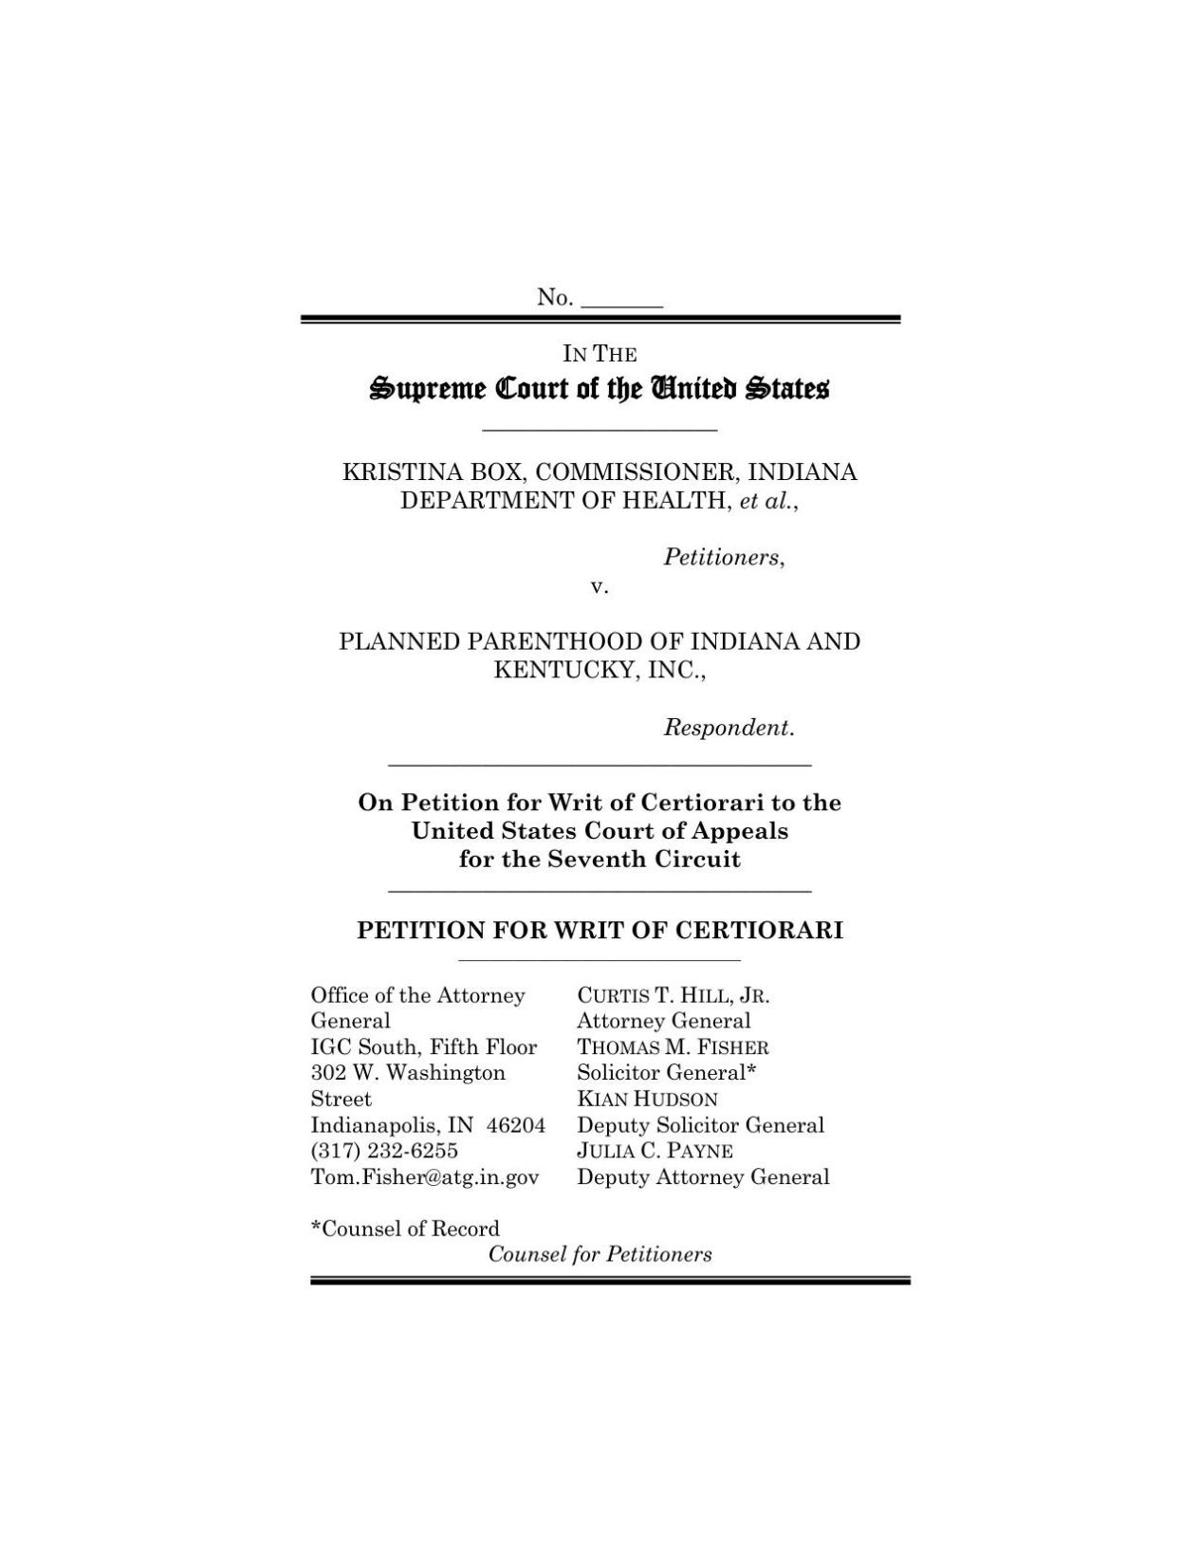 Box v. PPINK petition for writ of certiorari by state of Indiana